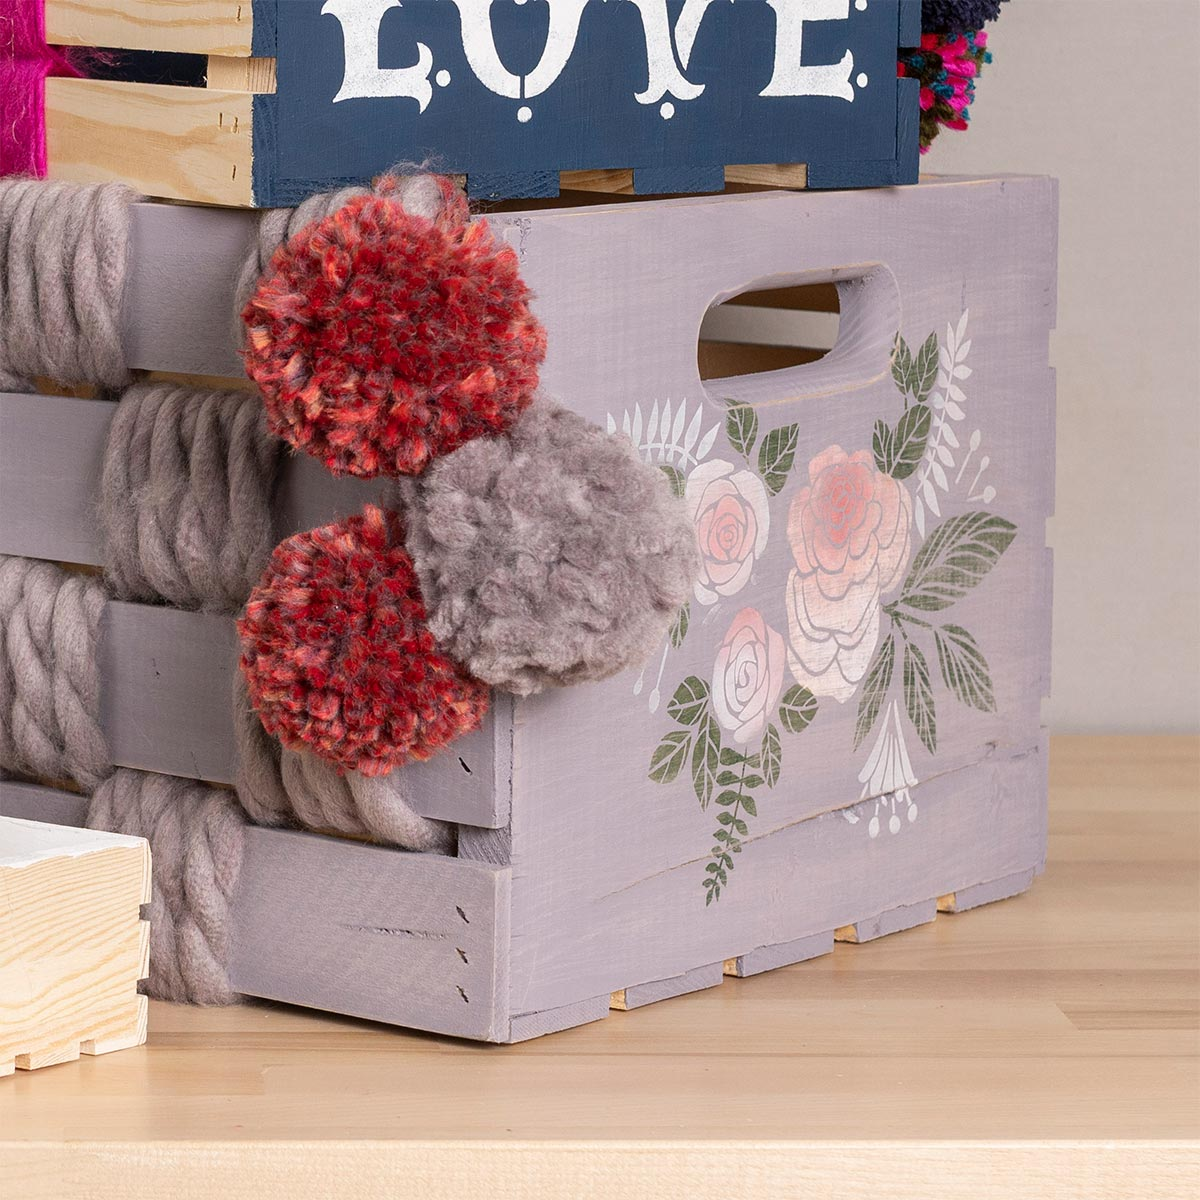 Wood Crate Storage with Yarn Accents